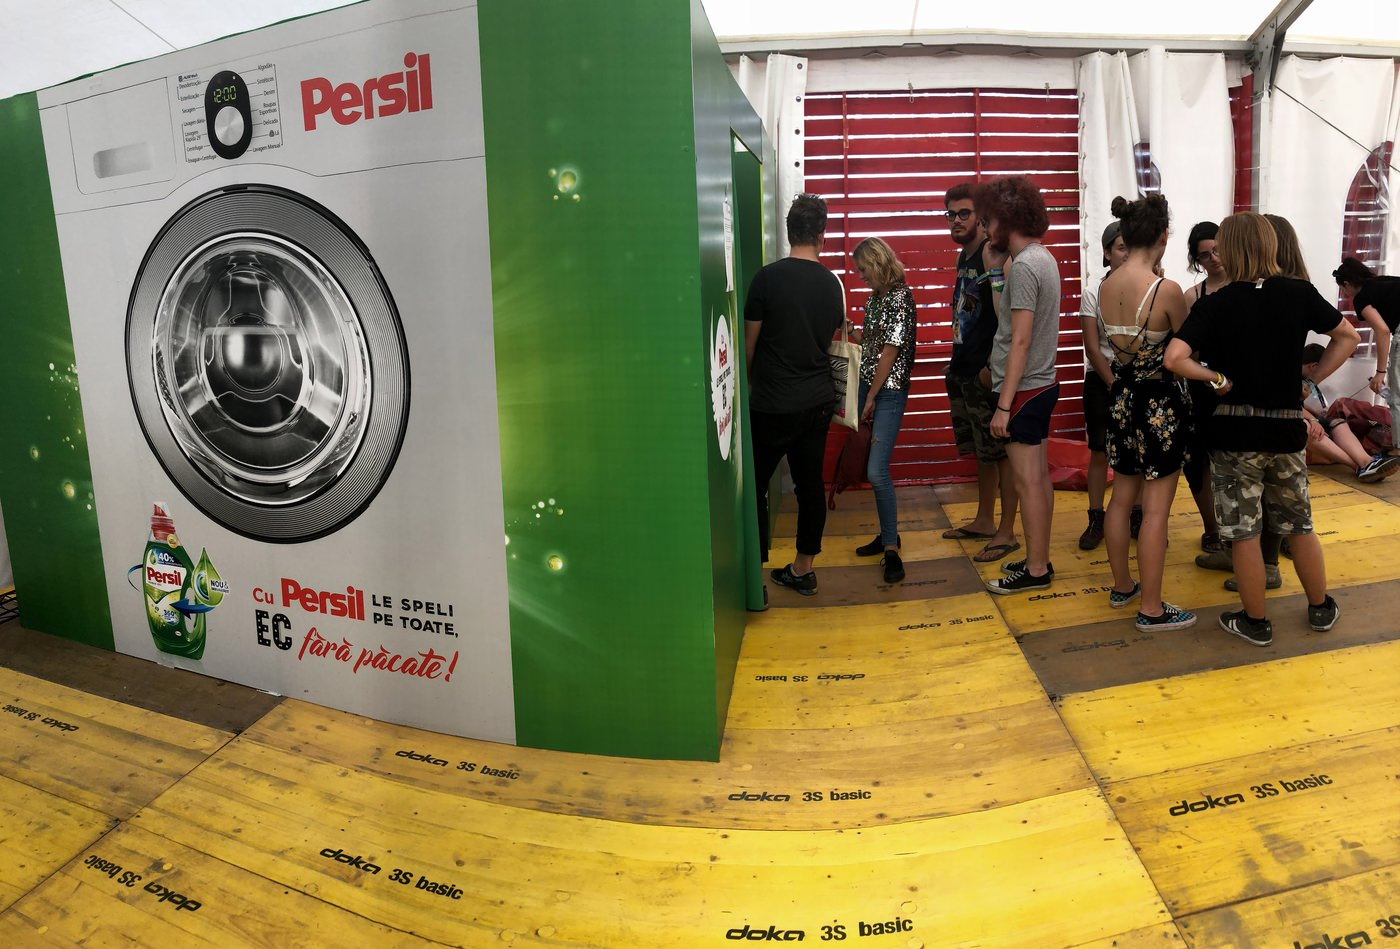 Activare-Photobooth-Cheerup-Persil-Electric-Castle